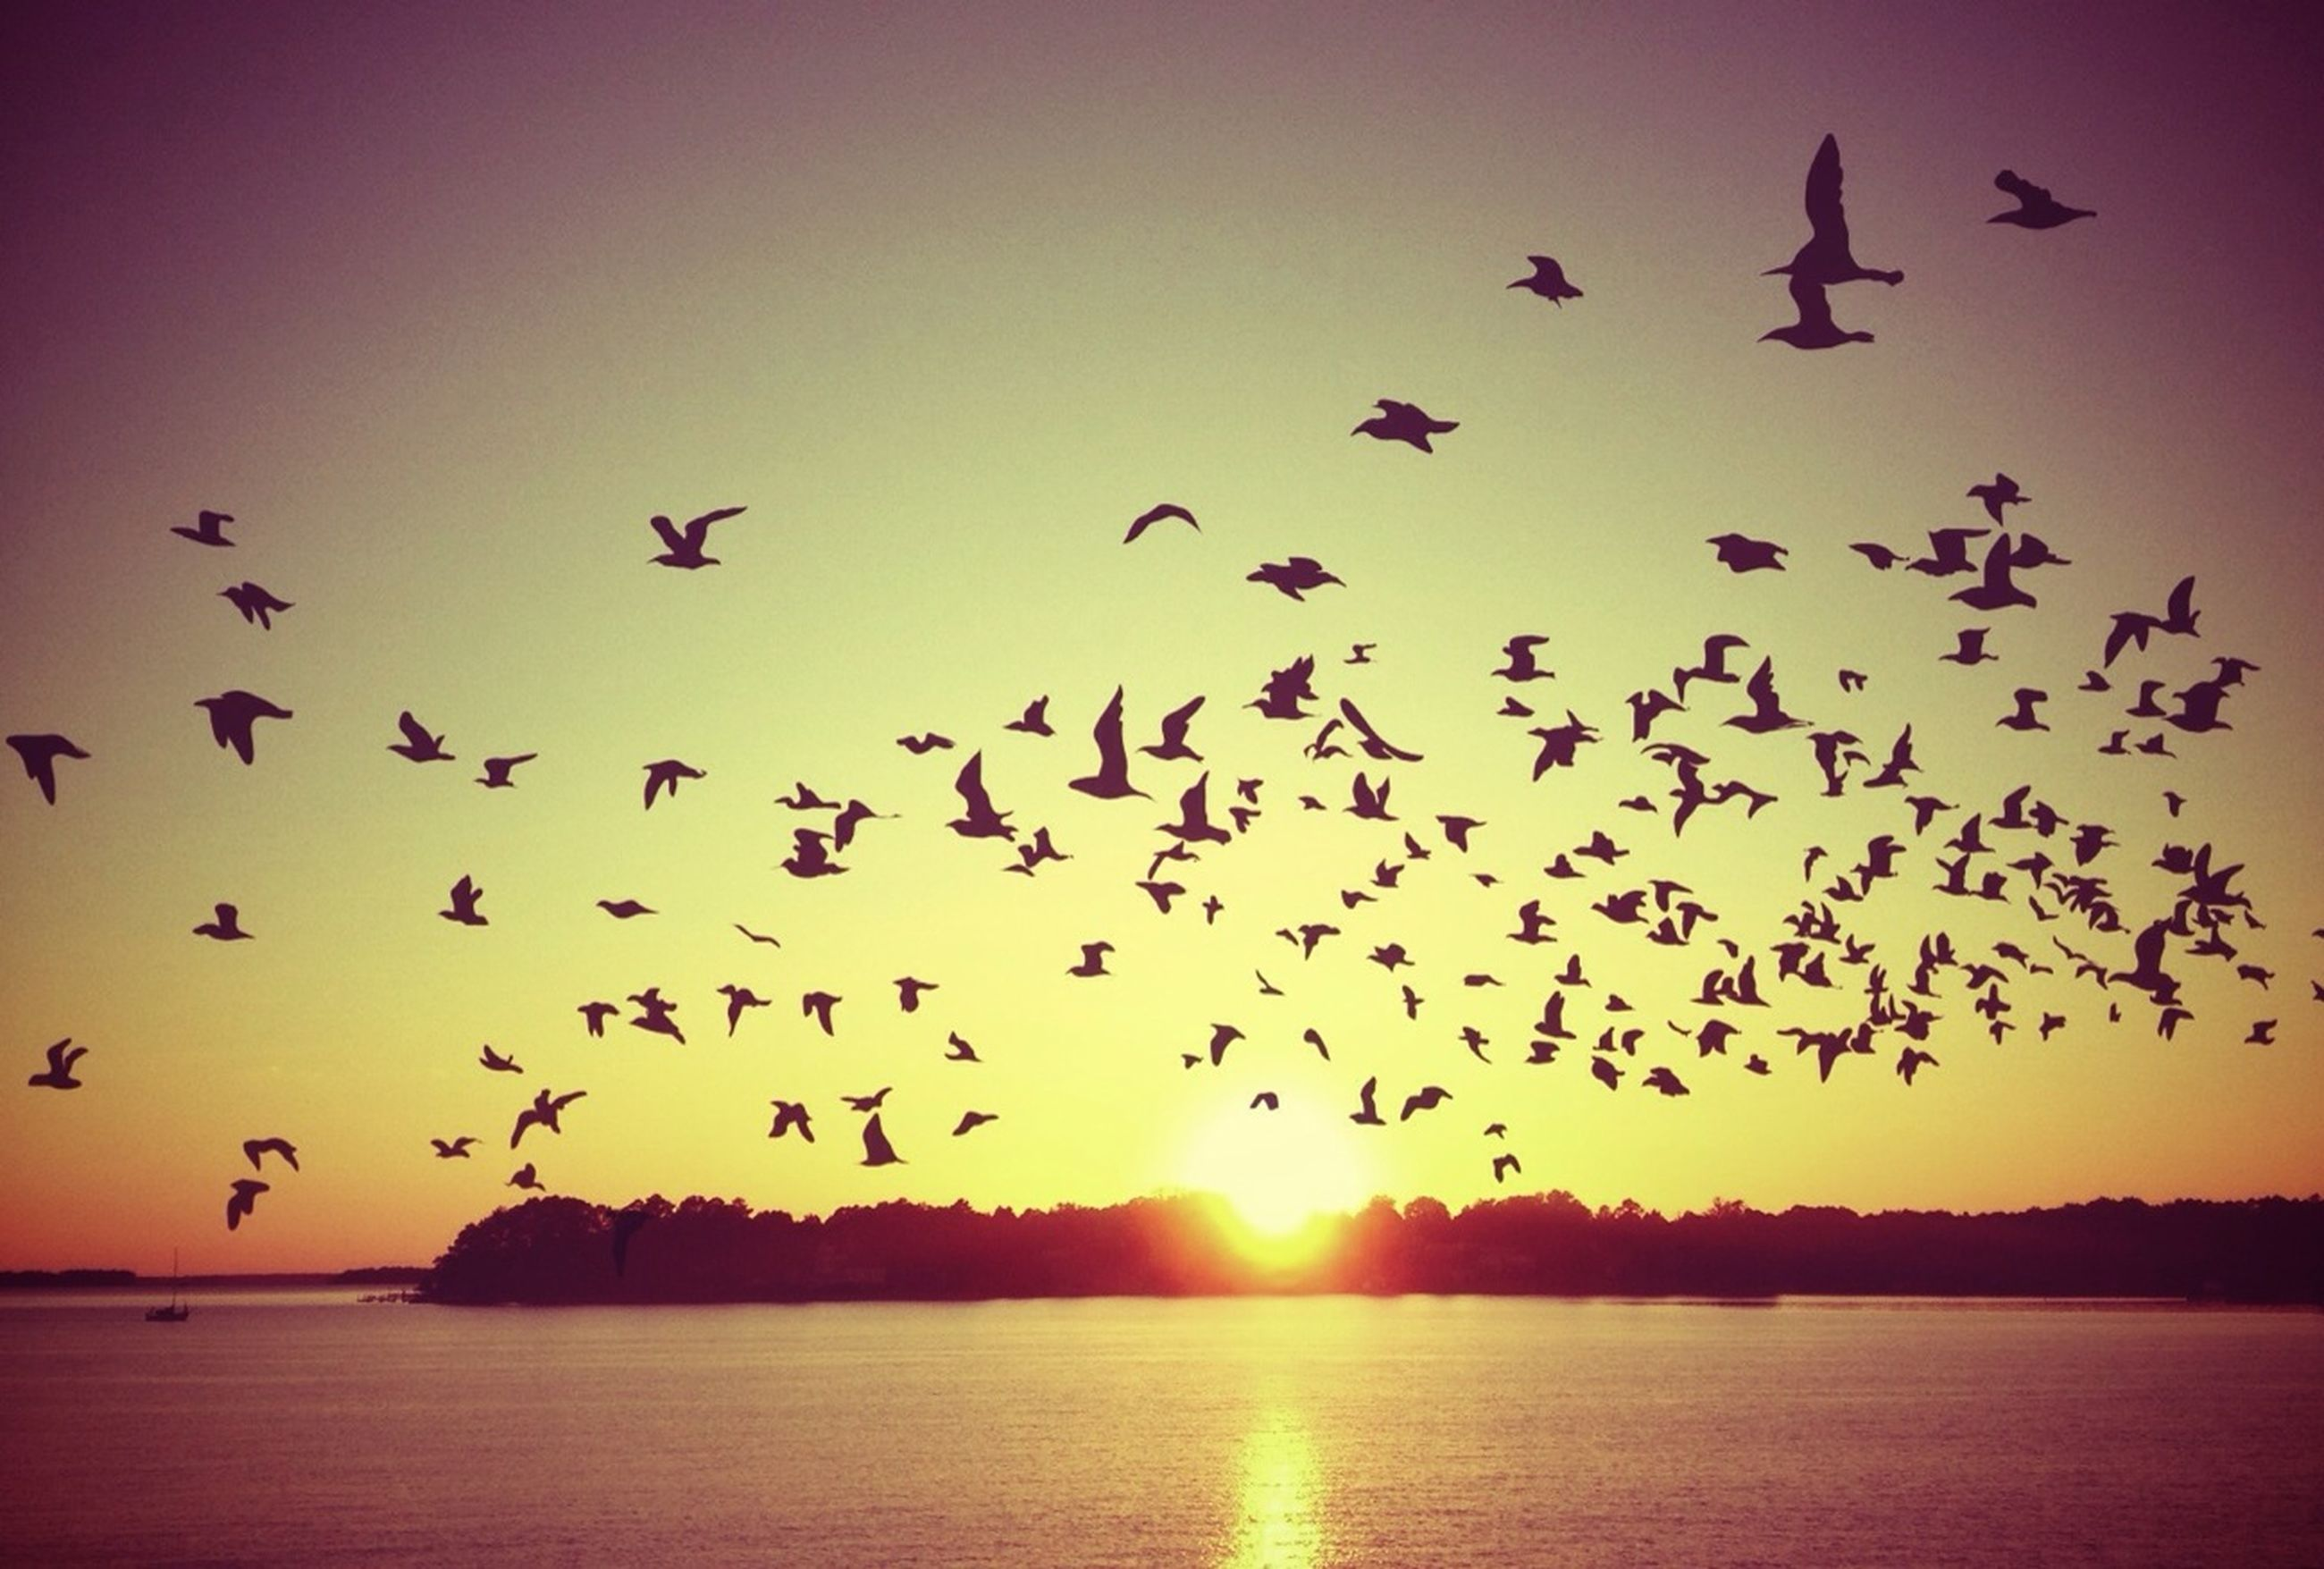 bird, flying, animal themes, sunset, animals in the wild, wildlife, sun, water, flock of birds, silhouette, scenics, sky, mid-air, beauty in nature, sea, tranquil scene, nature, clear sky, spread wings